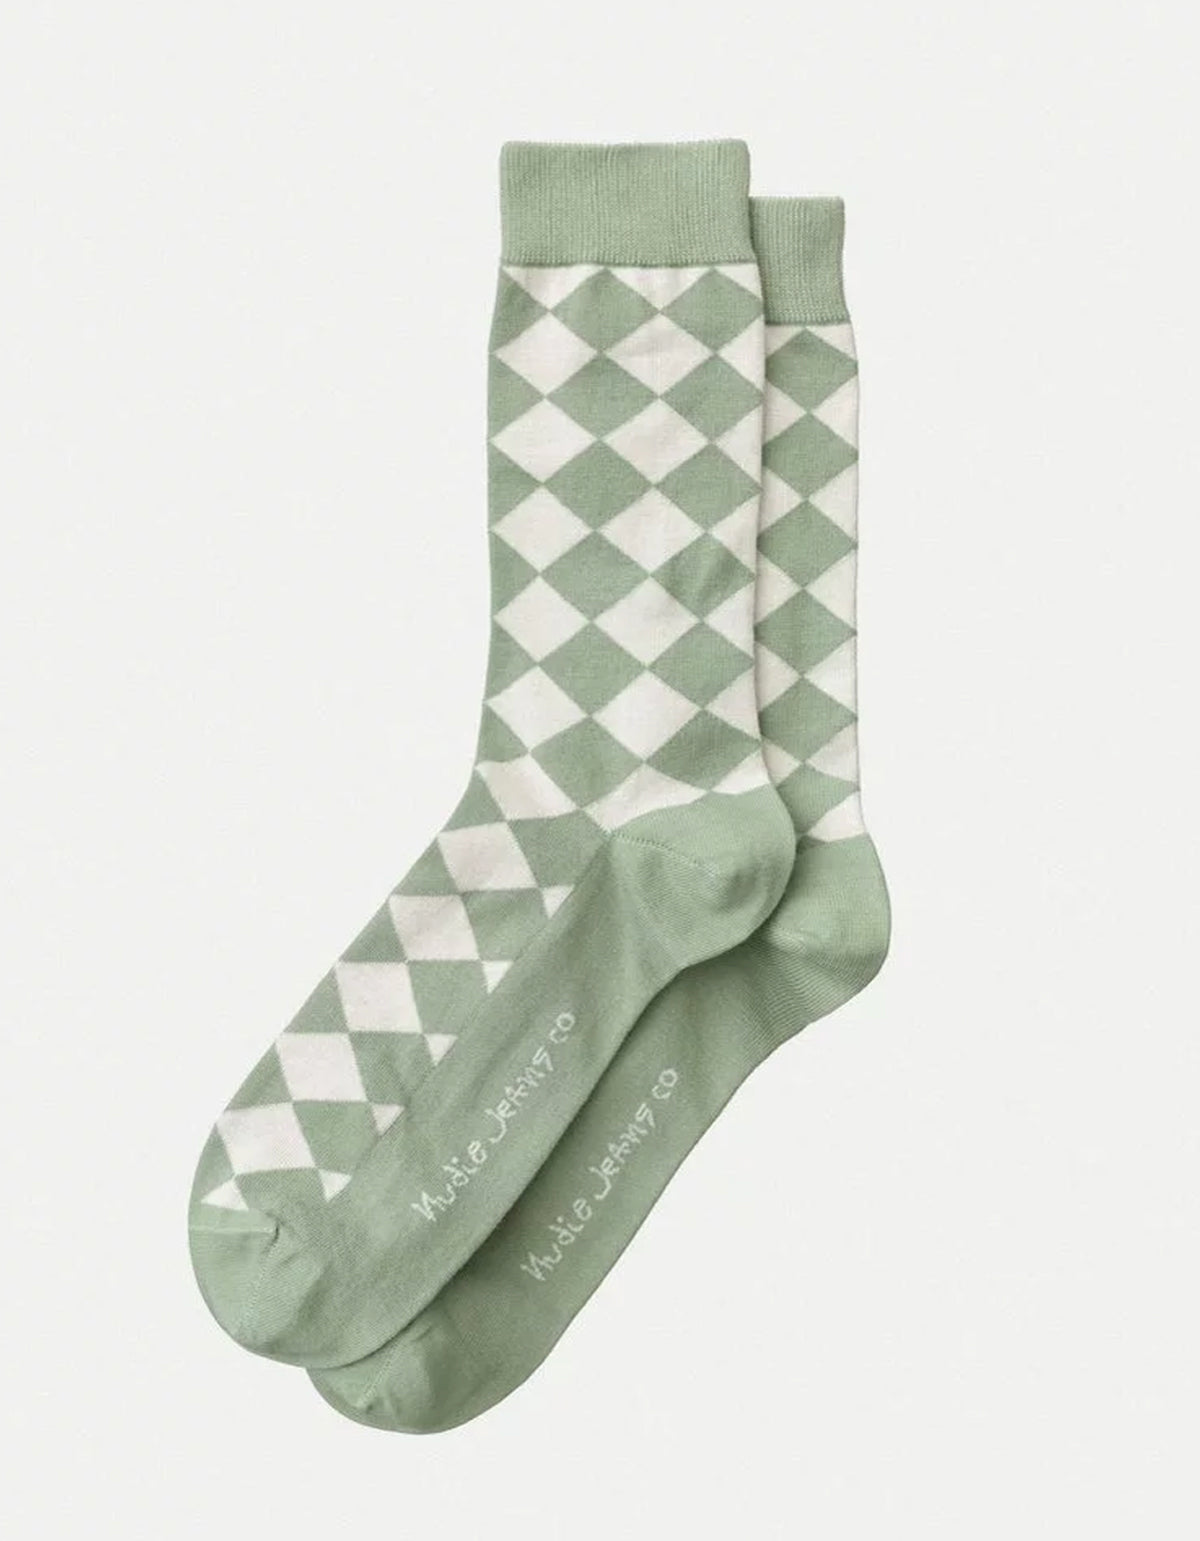 Nudie Olsson NJ Argyle Socks Pale Green